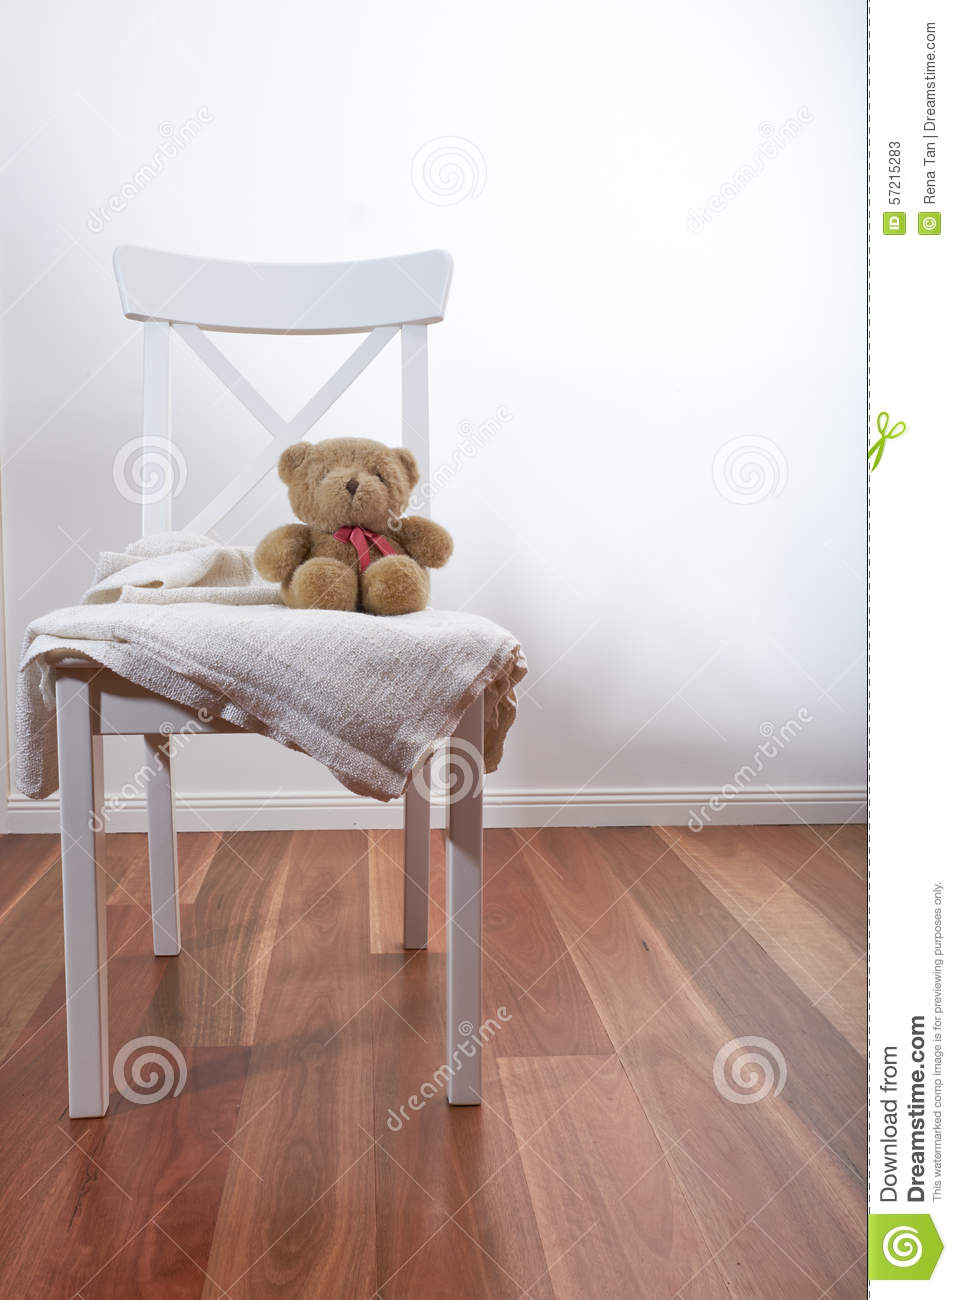 teddy bear on chair stock photo image 57215283. Black Bedroom Furniture Sets. Home Design Ideas